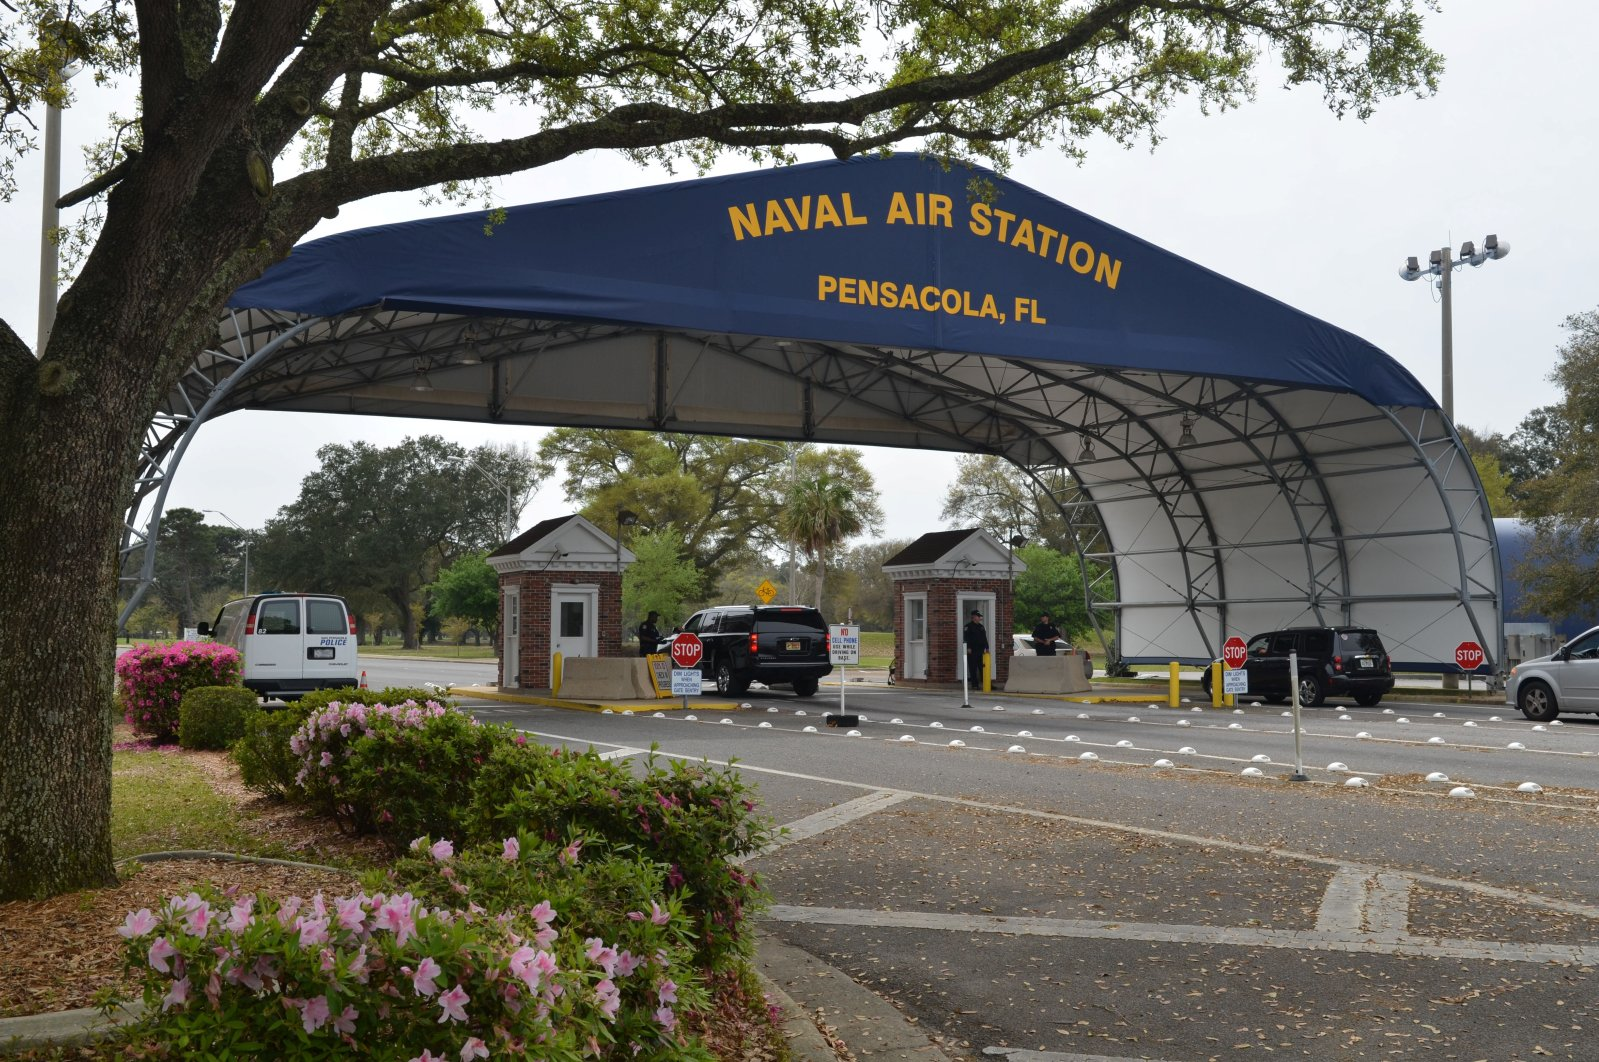 The main gate at Naval Air Station Pensacola is seen on Navy Boulevard in Pensacola, Florida, U.S. March 16, 2016. (Reuters Photo)